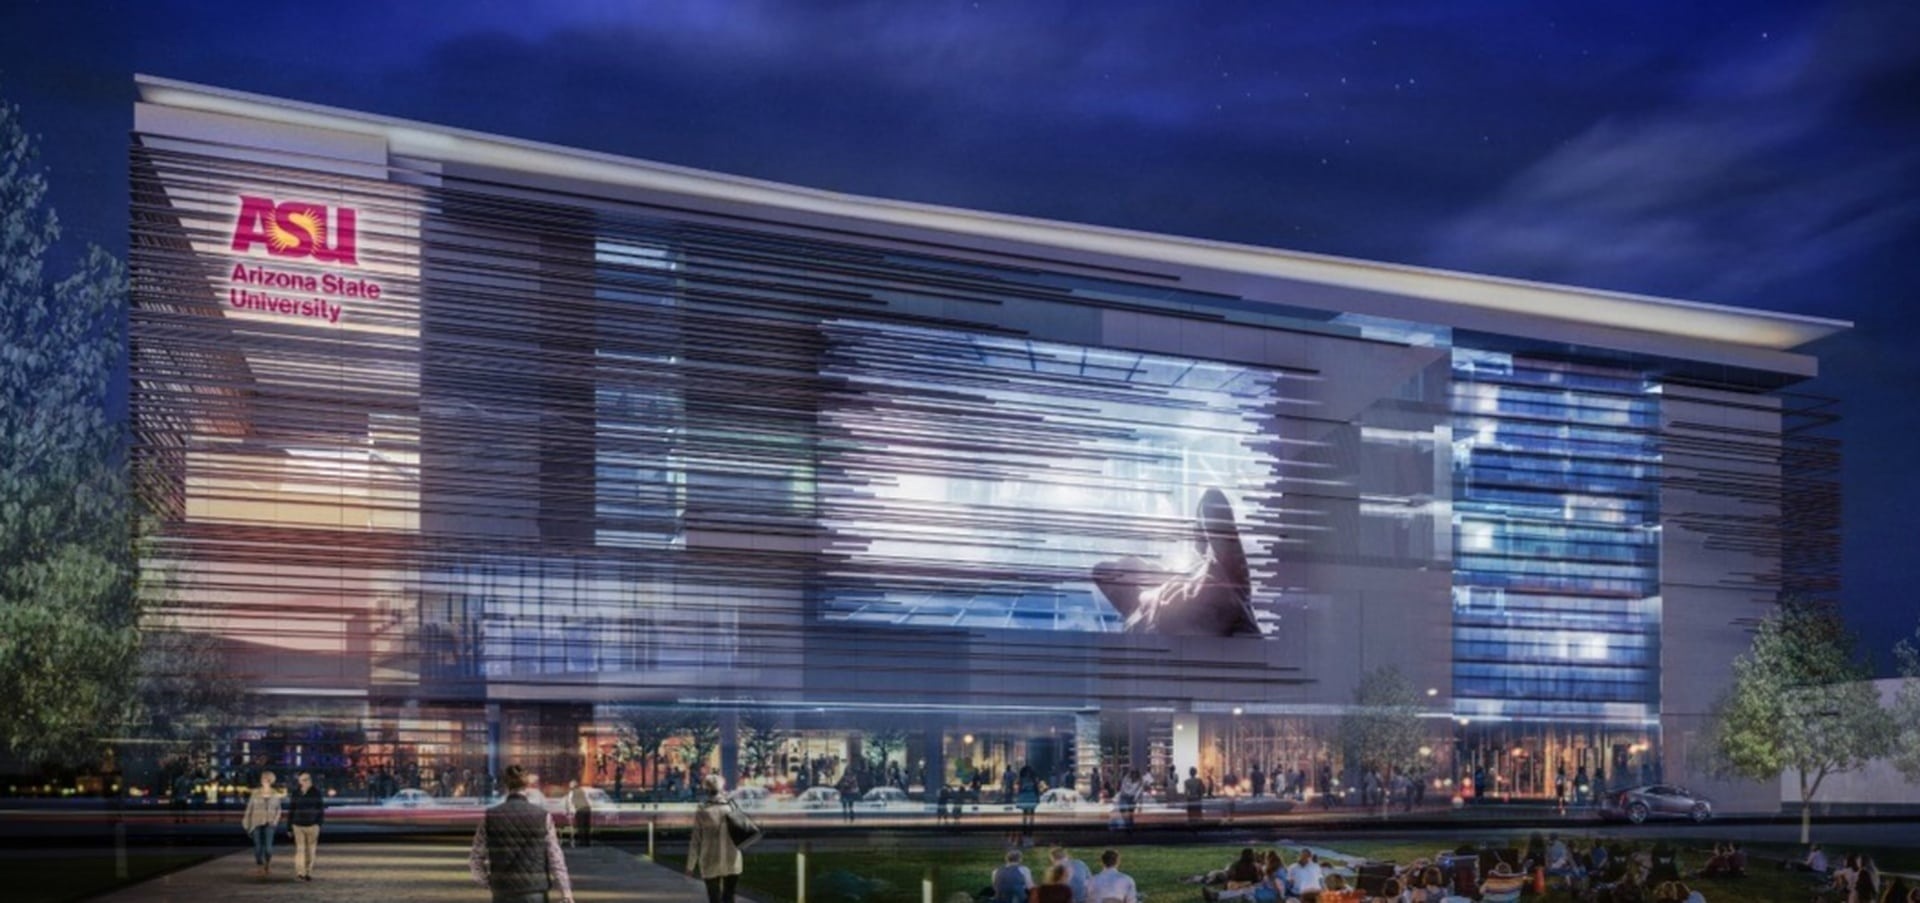 A rendering of the forthcoming new tech-centric ASU campus in Mesa, Arizona